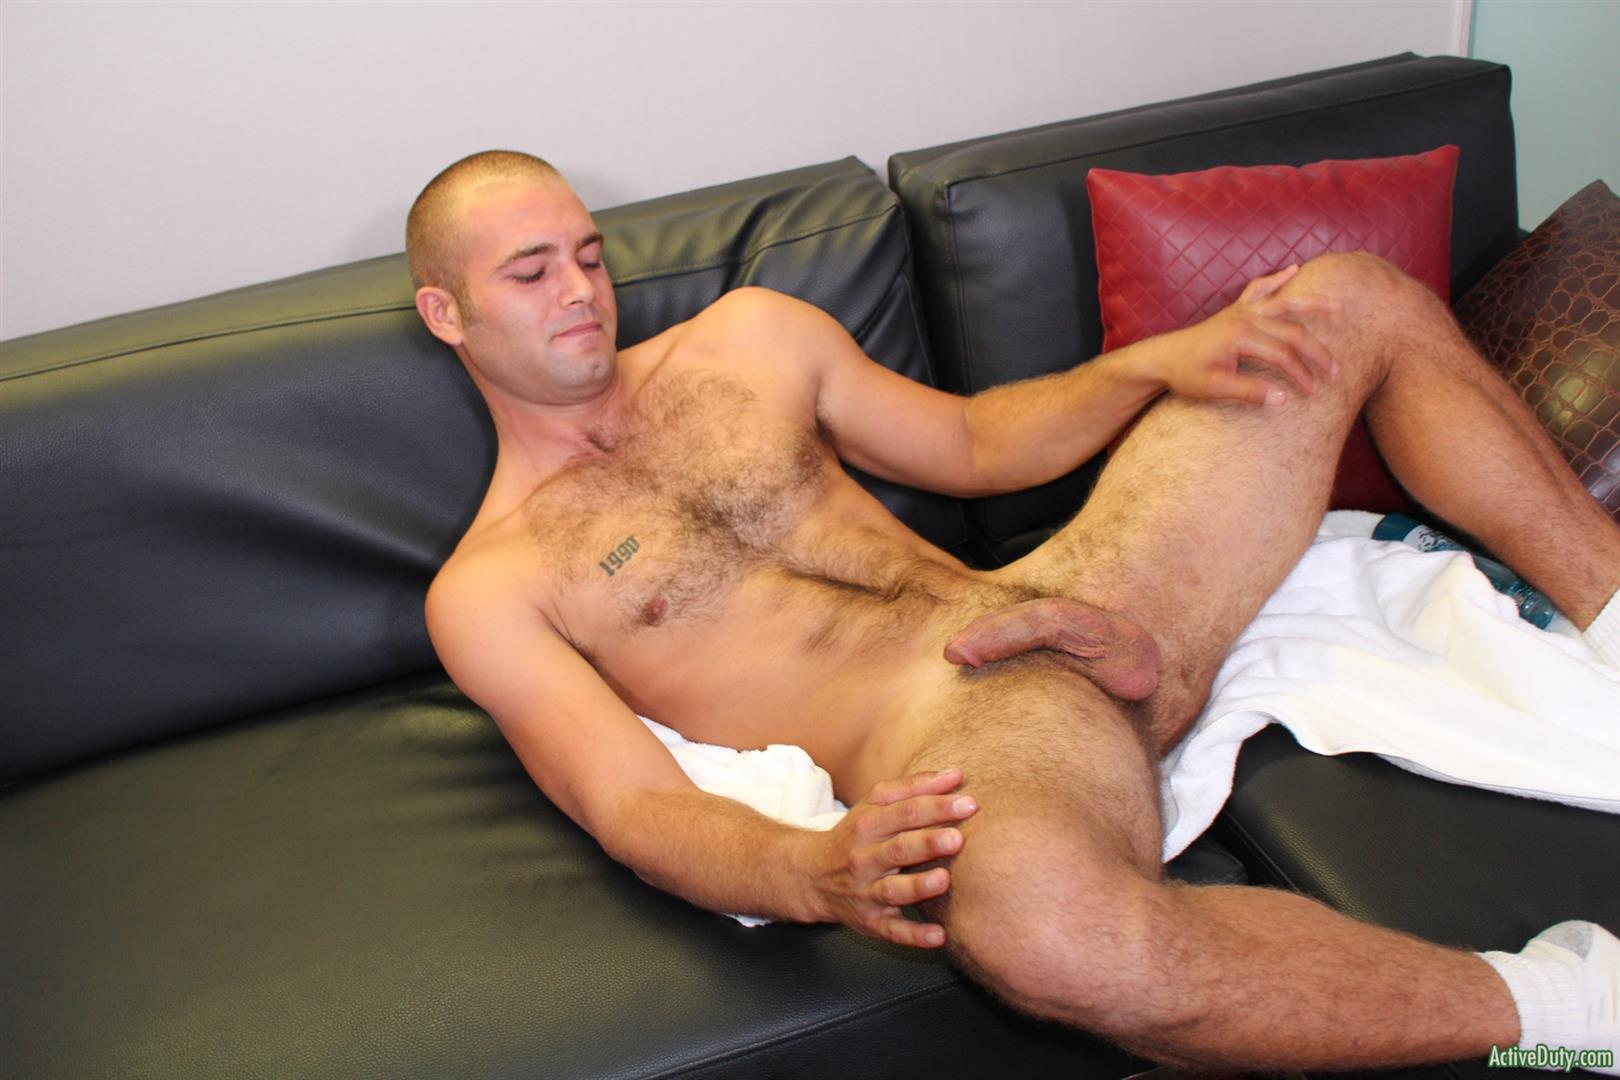 Active Duty Sean Naked Army Soldier With A Thick Cock Amateur Gay Porn 12 27 Year Old Straight Army Soldier Jerks His Big Thick Cock